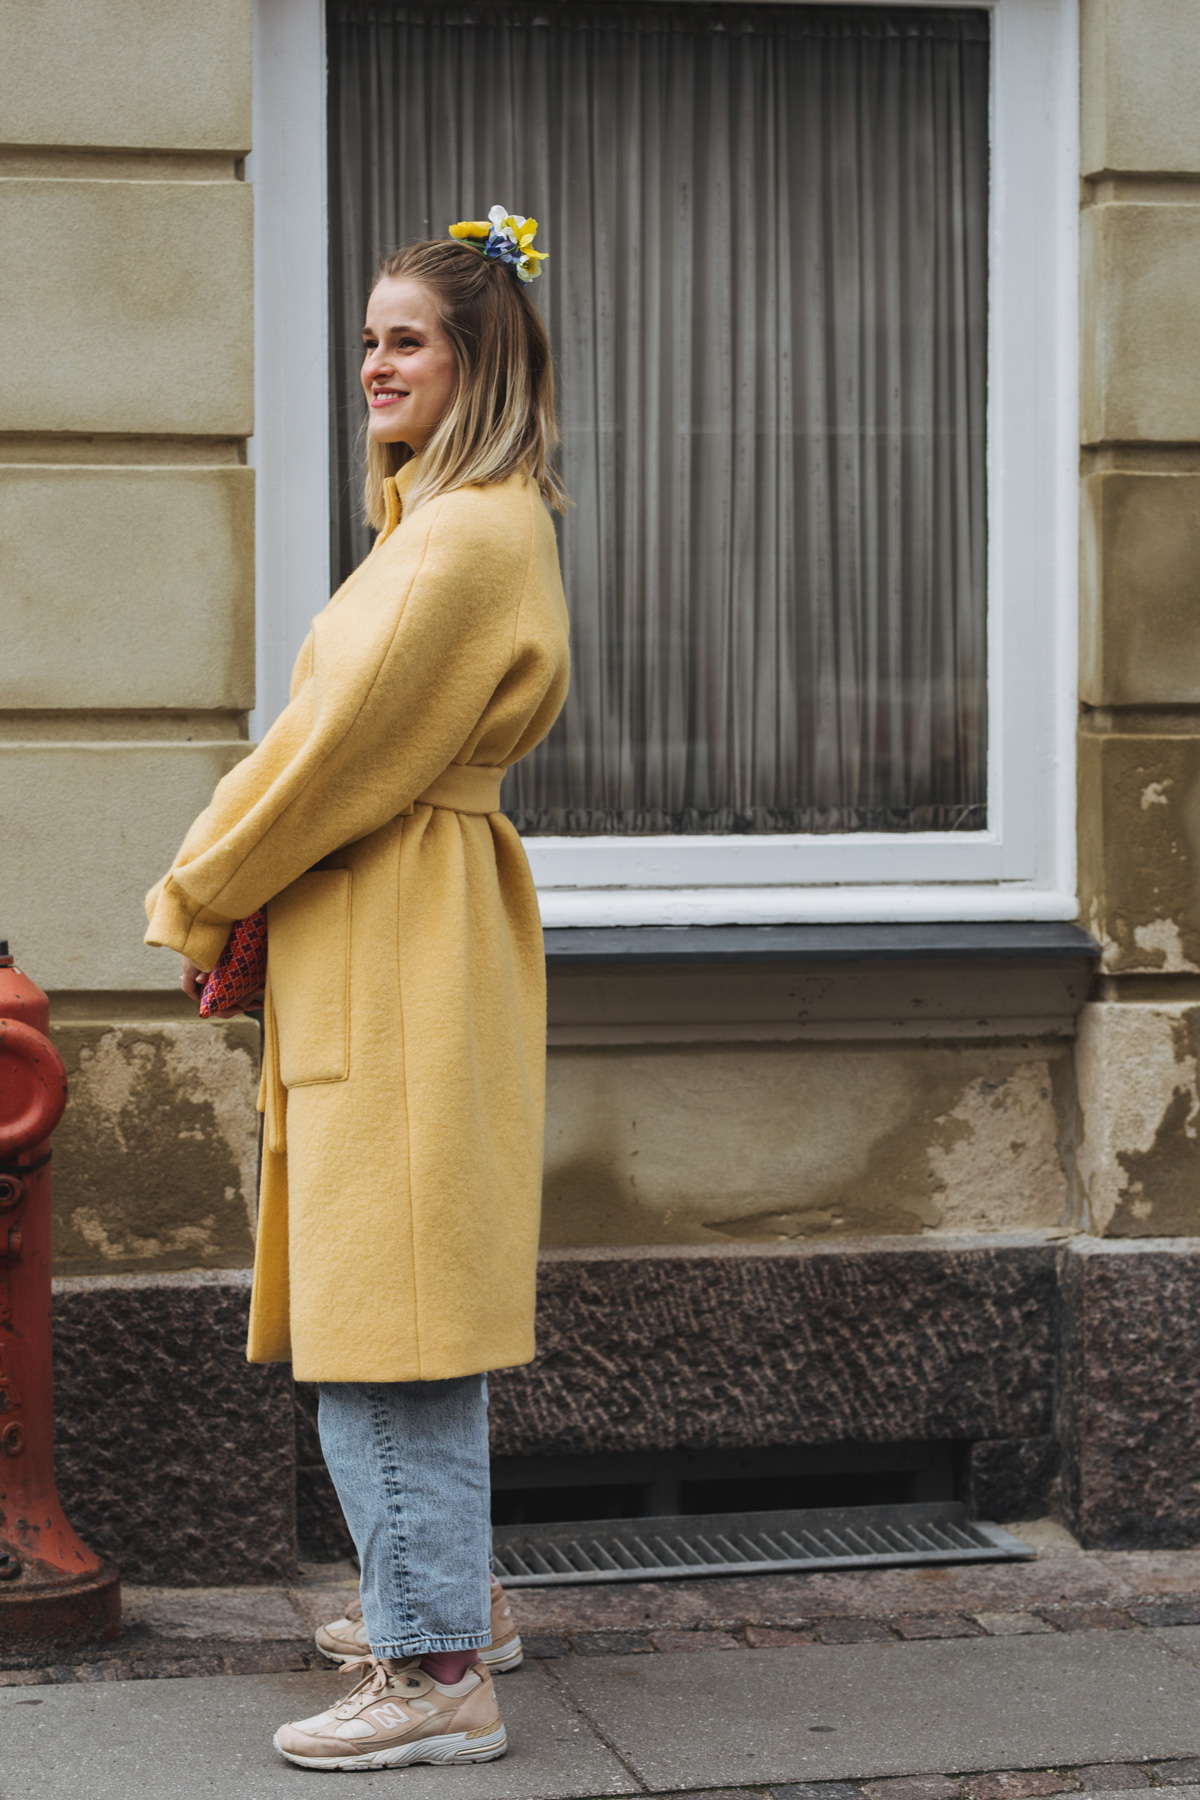 Rockpaperdresses, Cathrine Widunok Wichmand, Stine Goya yellow coat